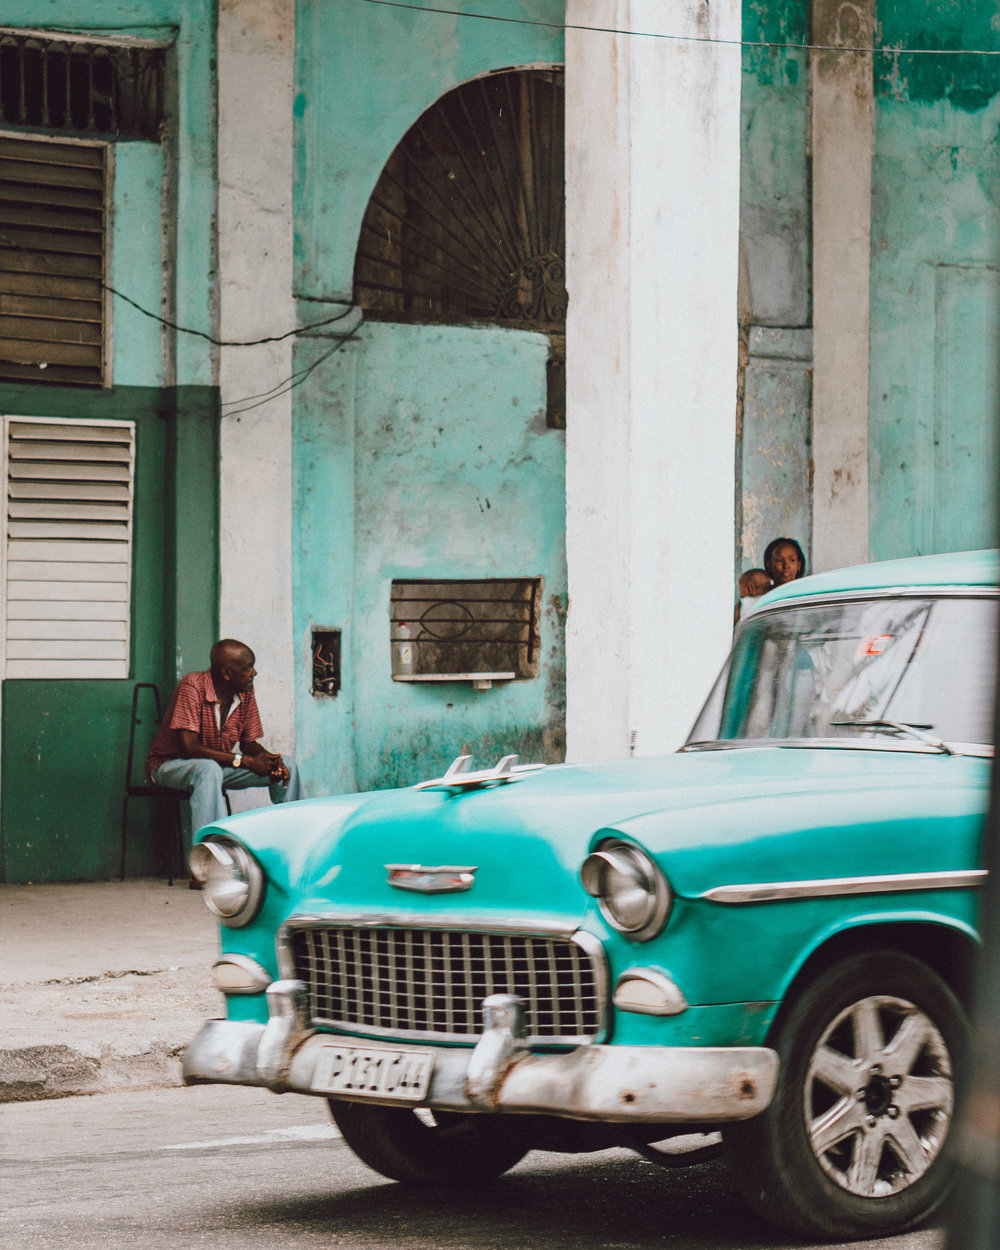 Coffee table book coming Fall 2019! - The book looks to offer a glimpse into the everyday lives of people in Cuba. A hardcover and softcover version will be available for pre-orders soon. Sign up for the newsletter to be notified first and to get discounts and exclusive offers.